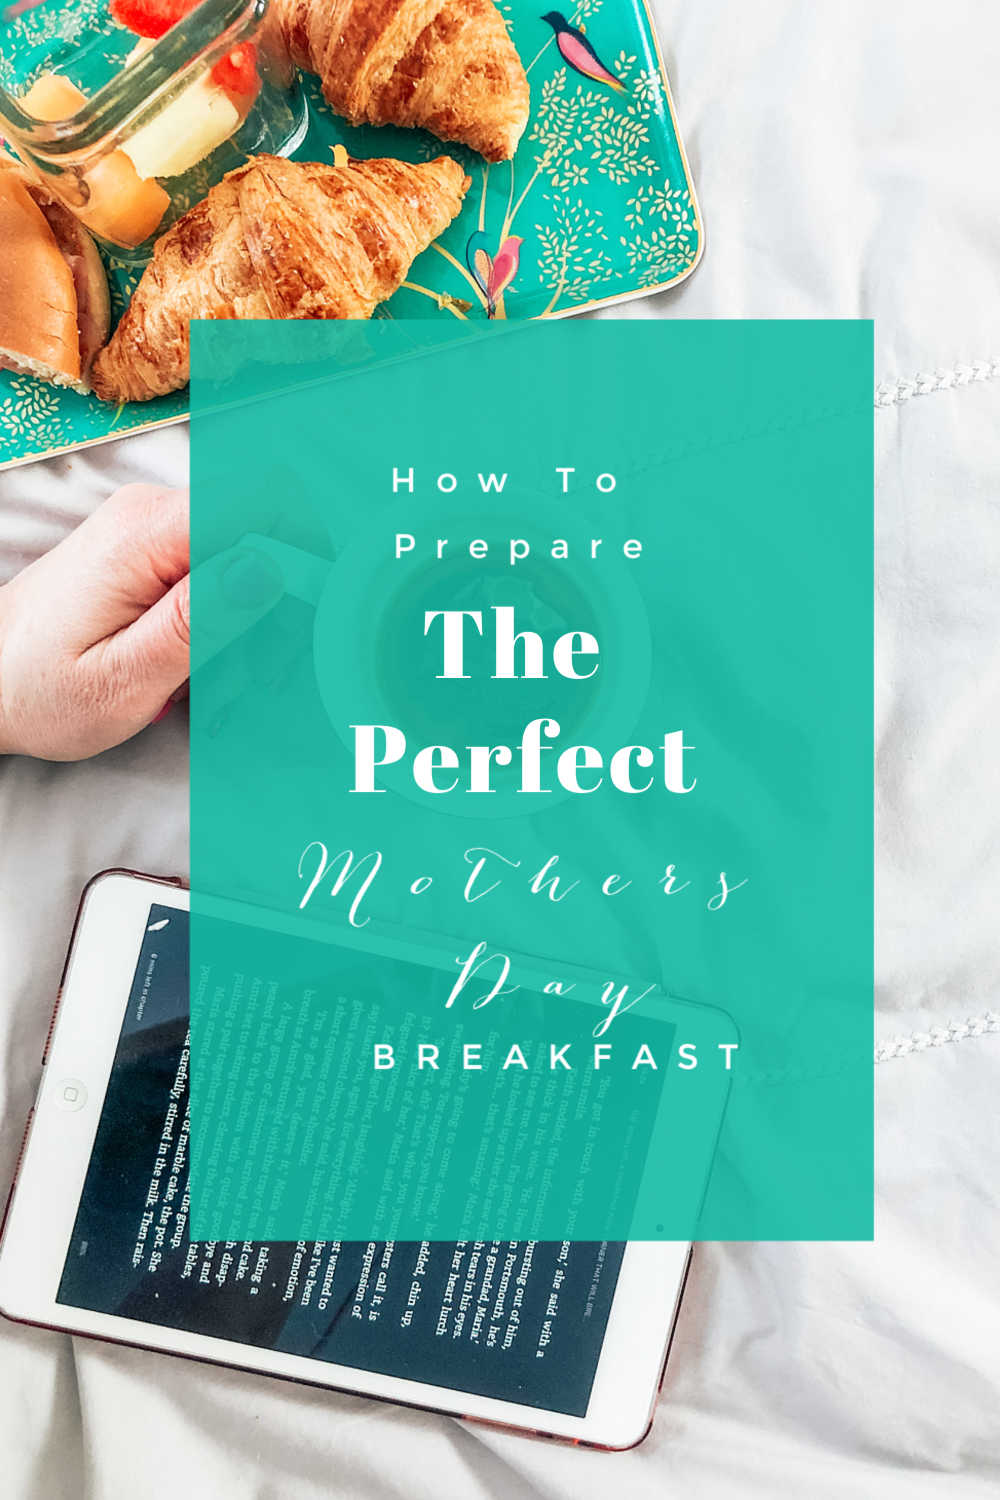 Breakfast in bed ideas for mothers day